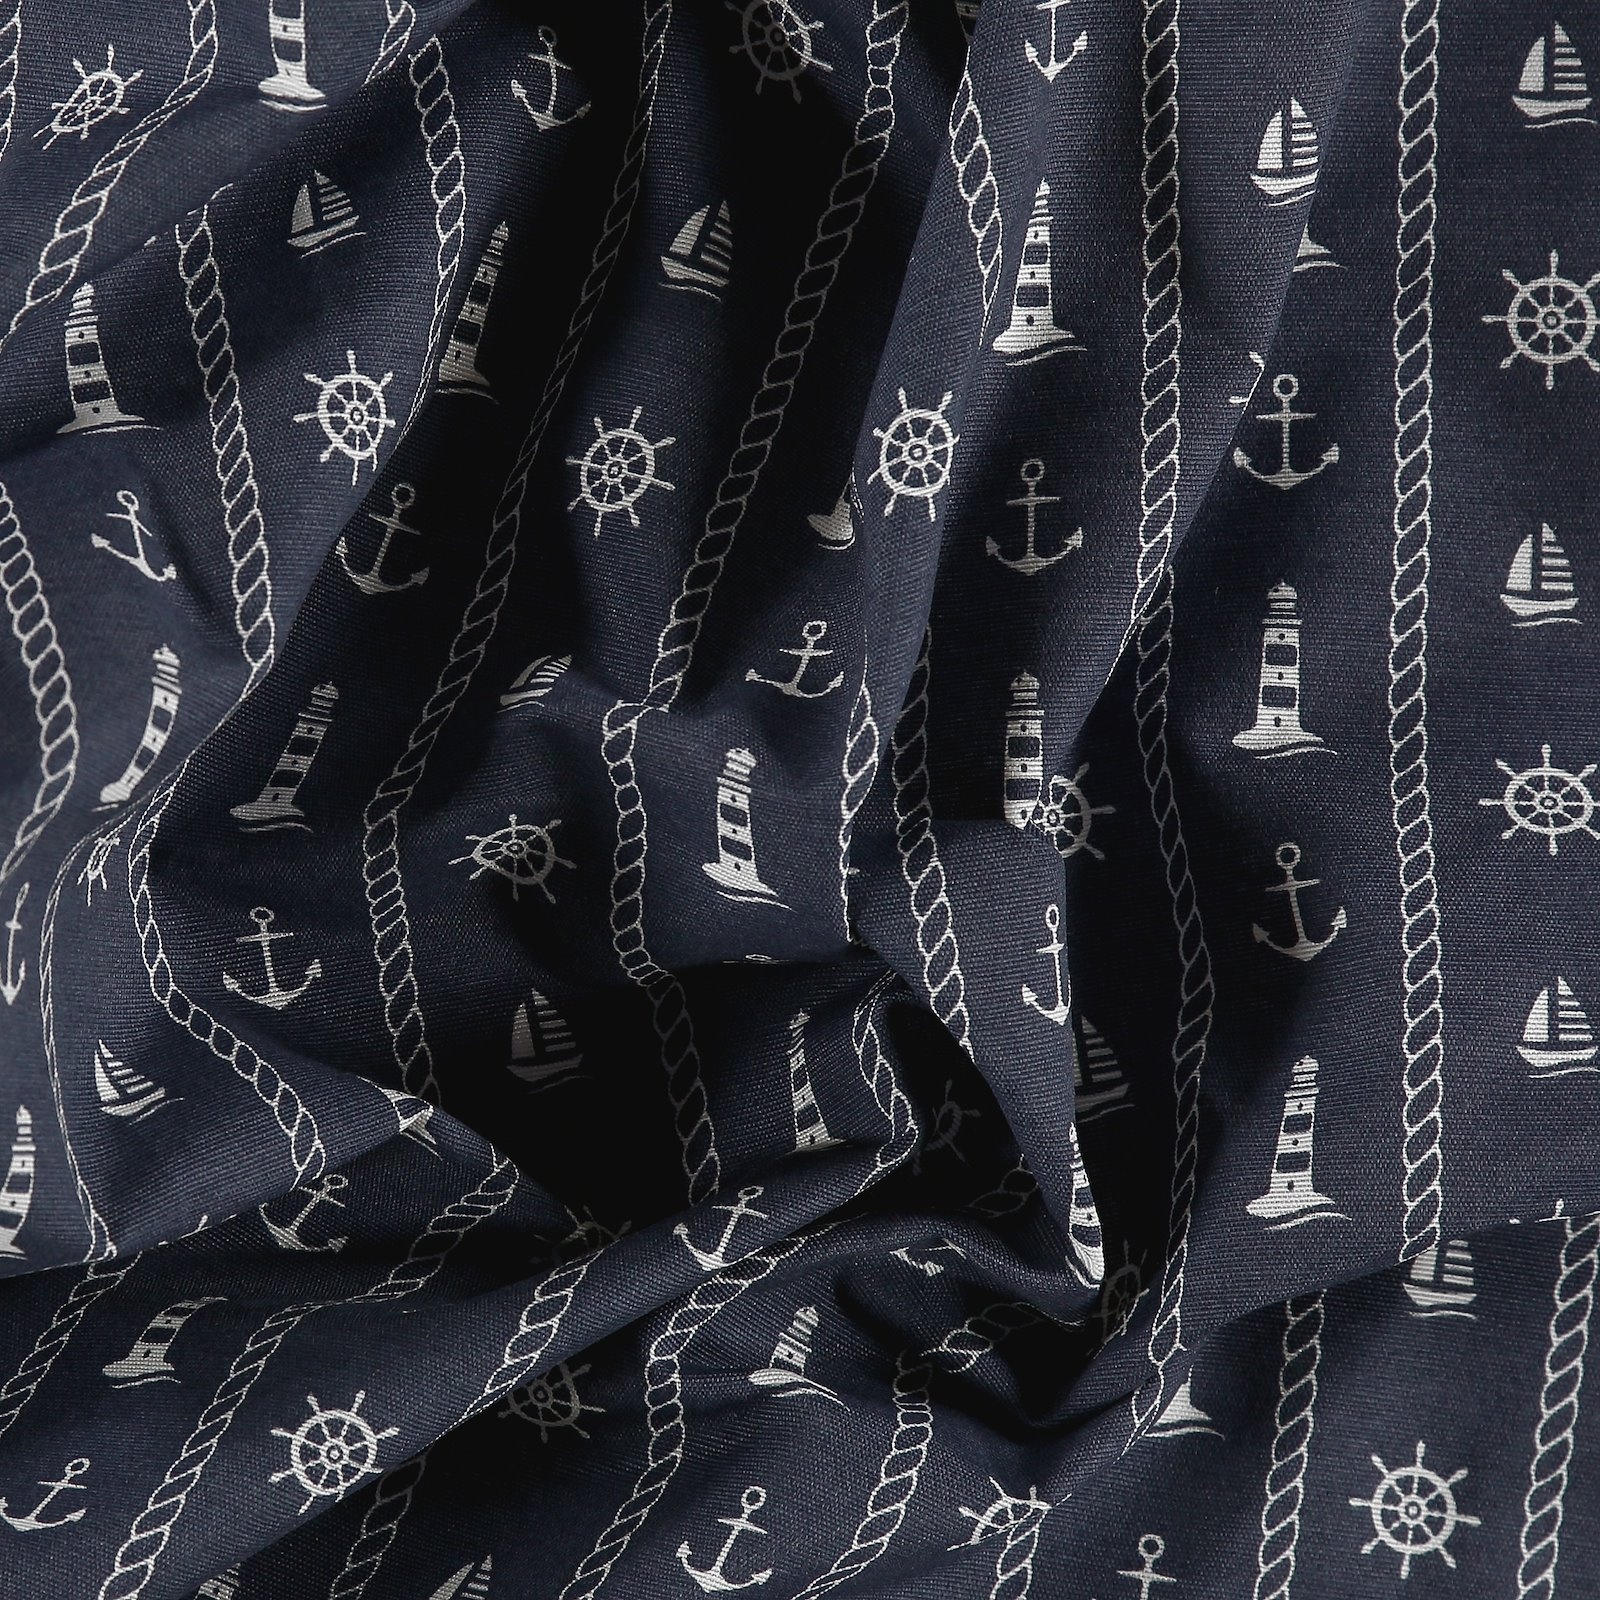 Woven navy with maritime print